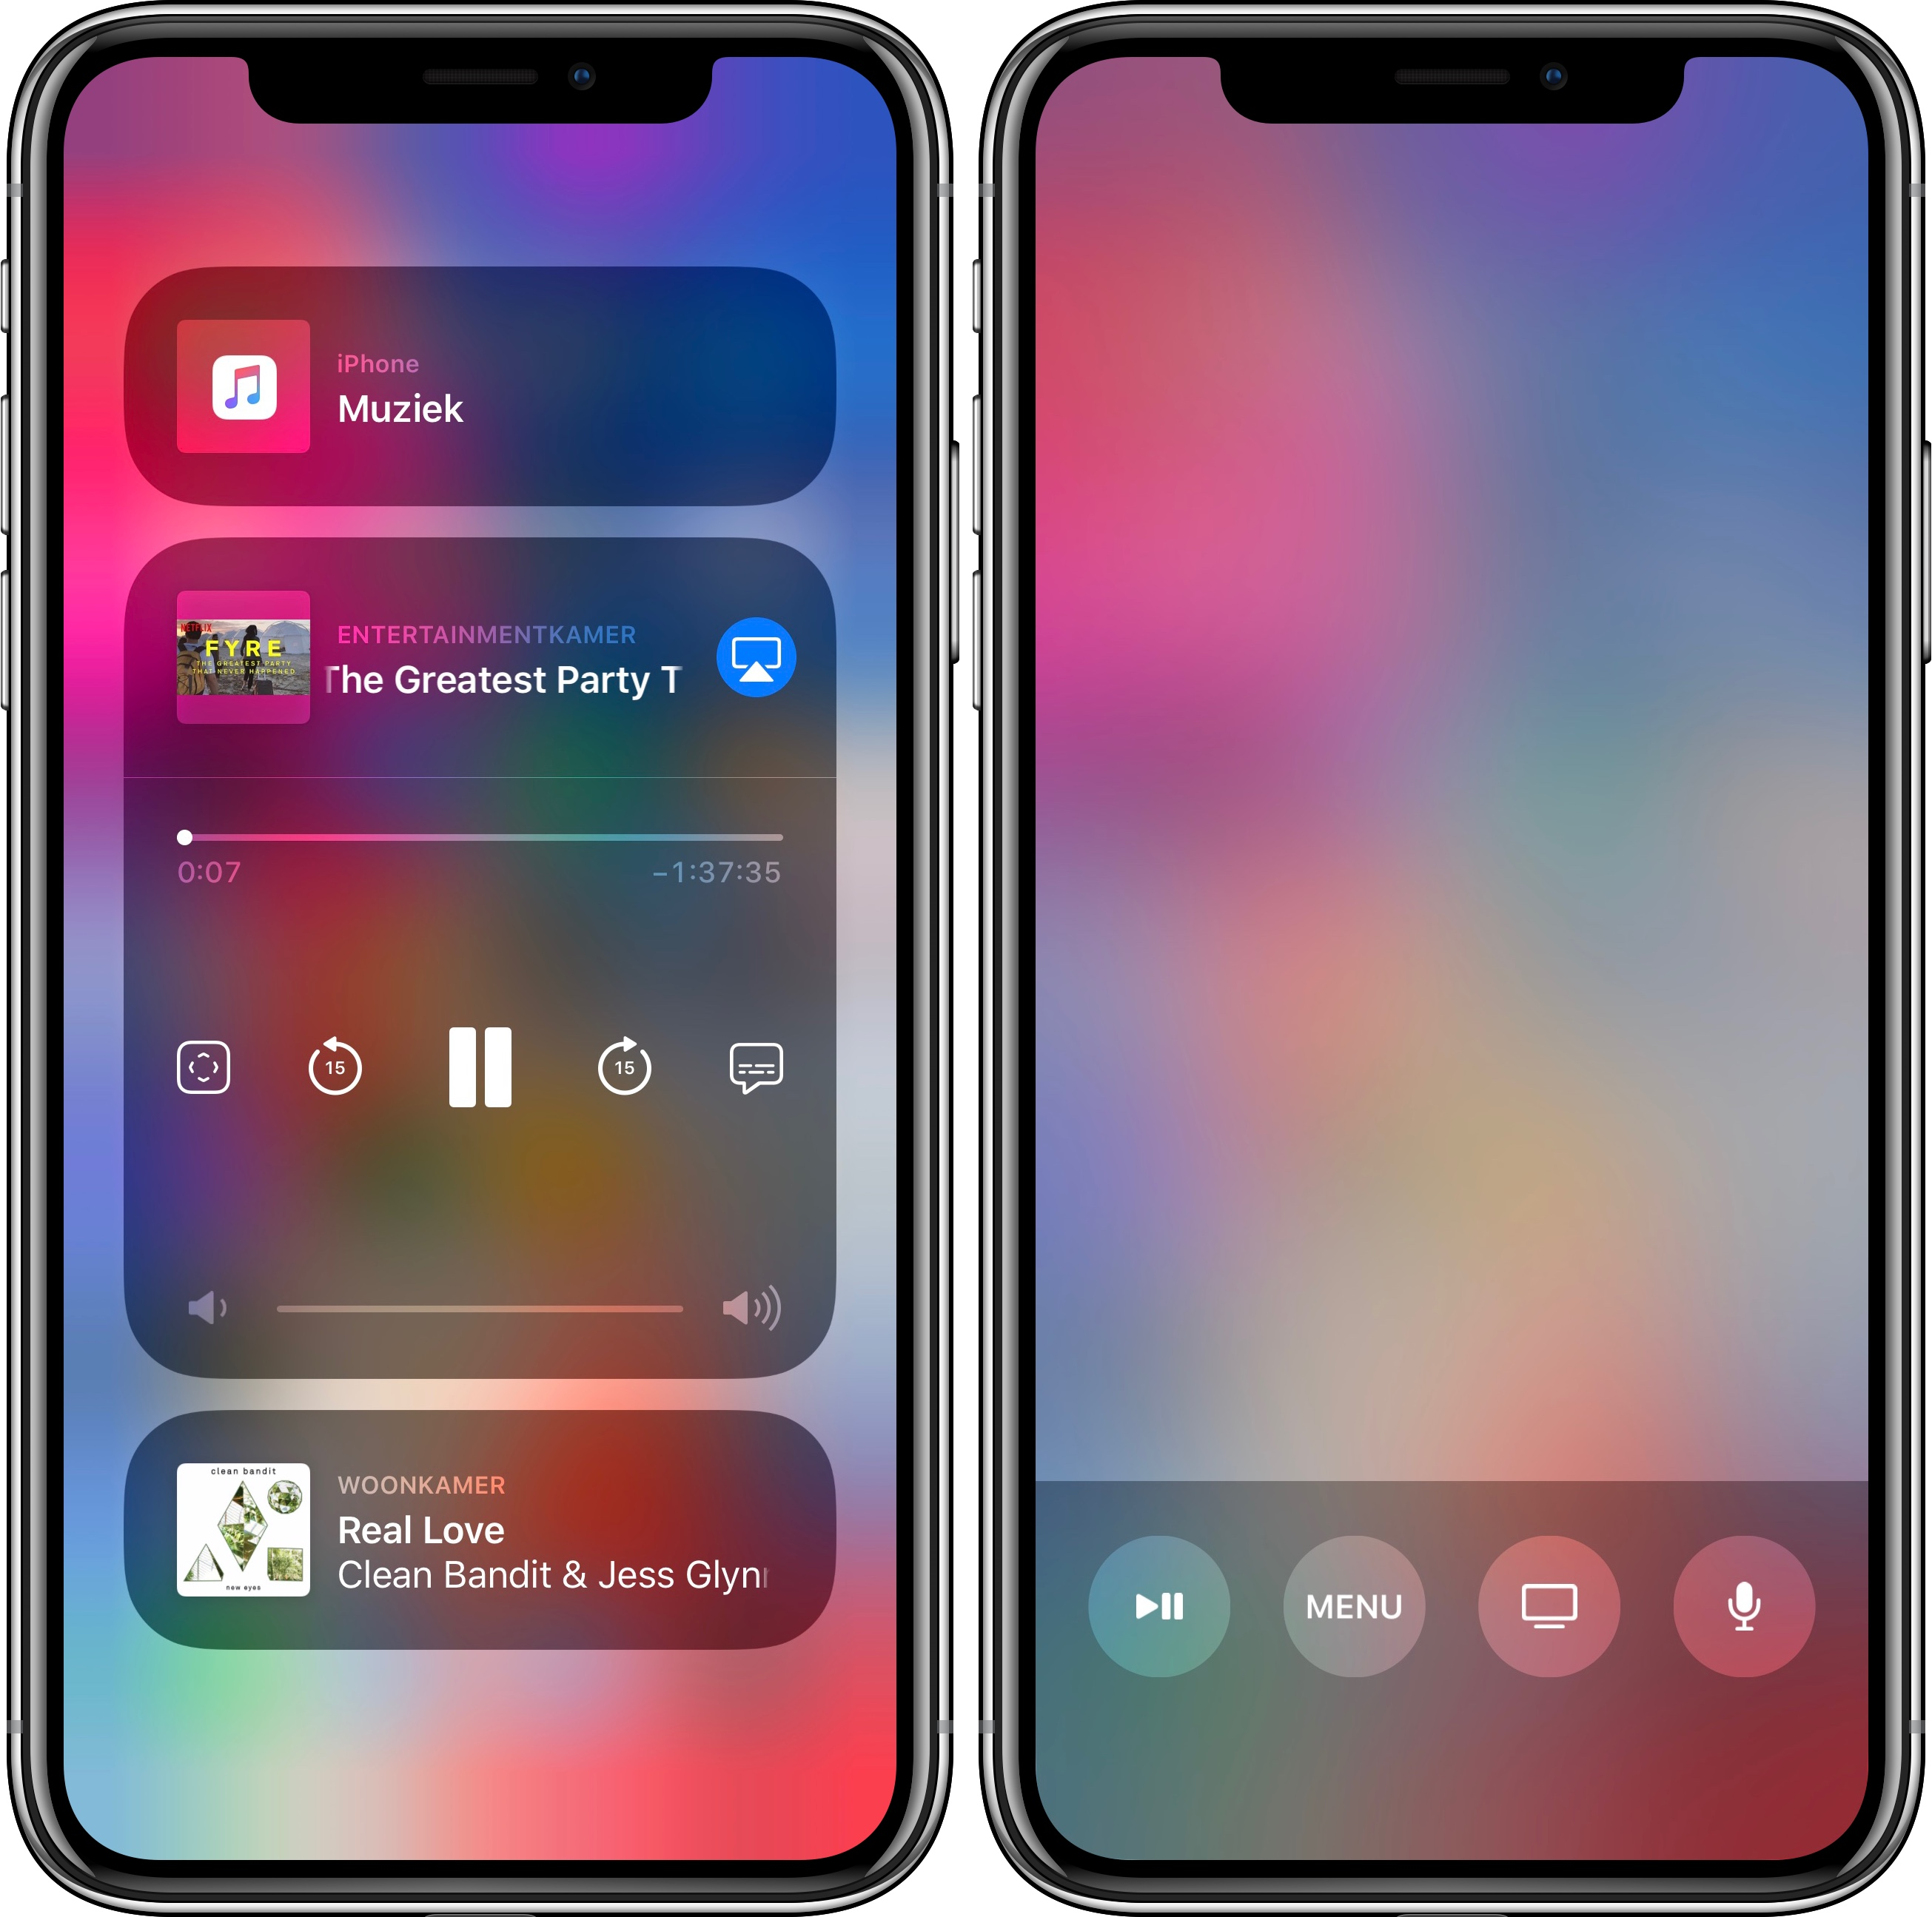 iOS 12.2 at a distance